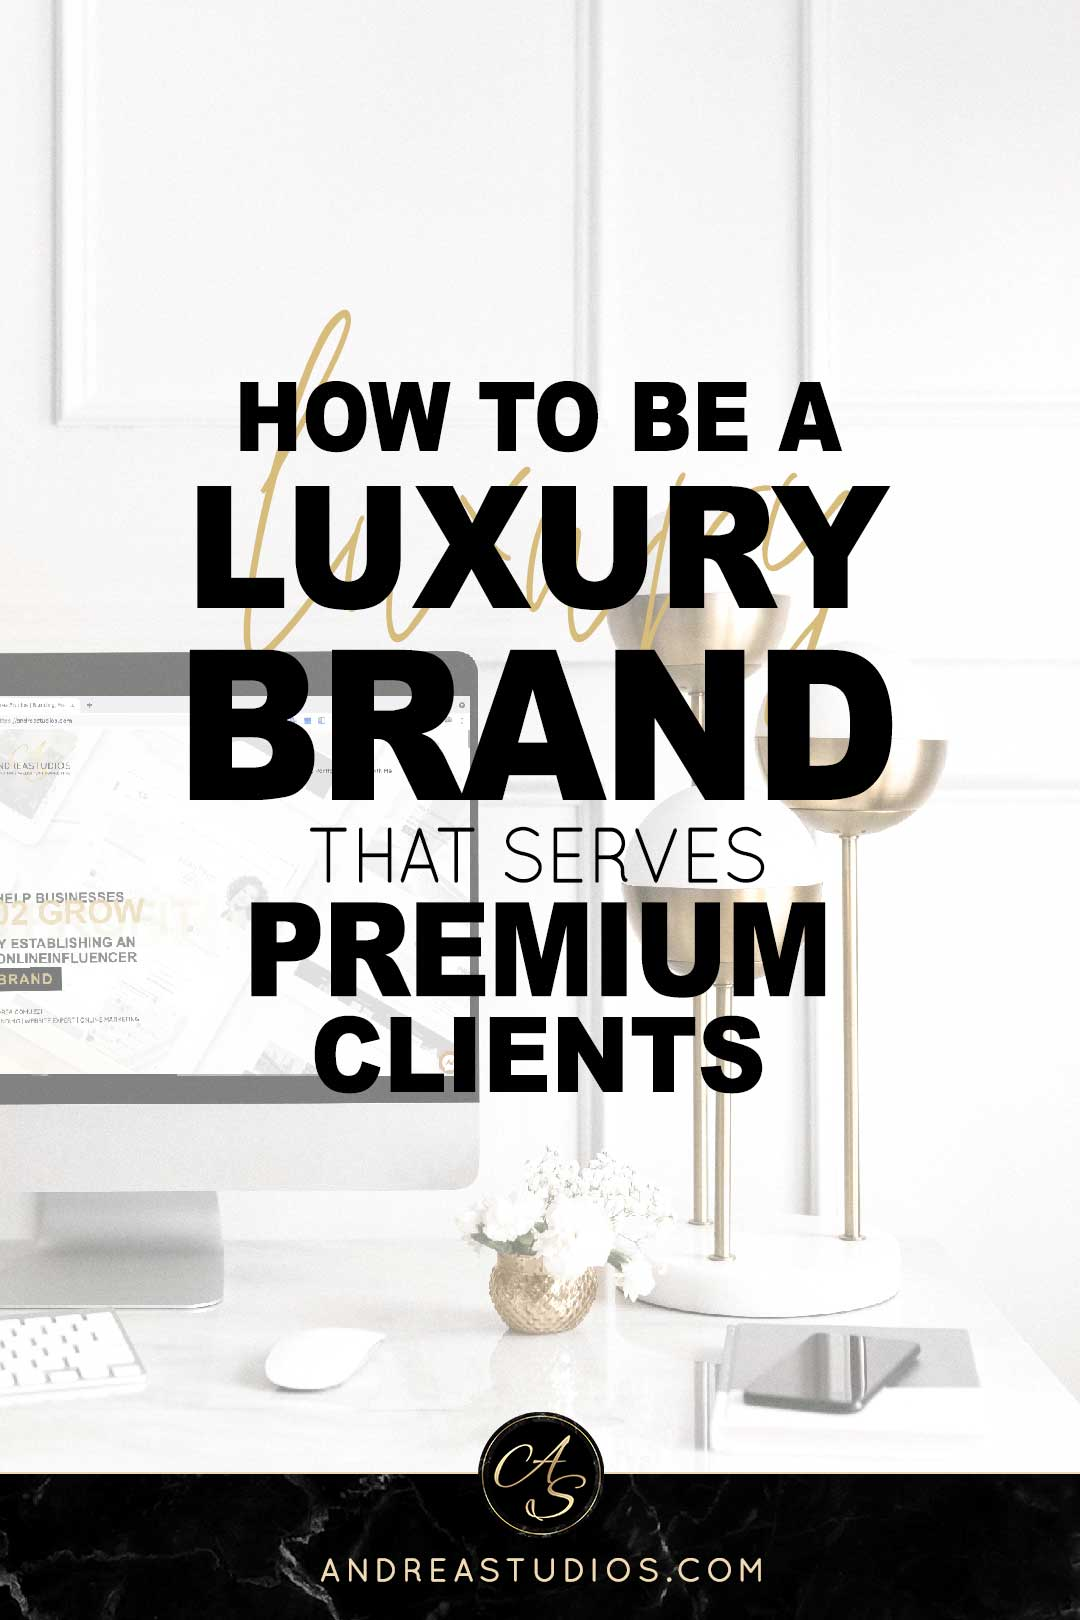 How to Be a Luxury Brand that Serves Premium Clients